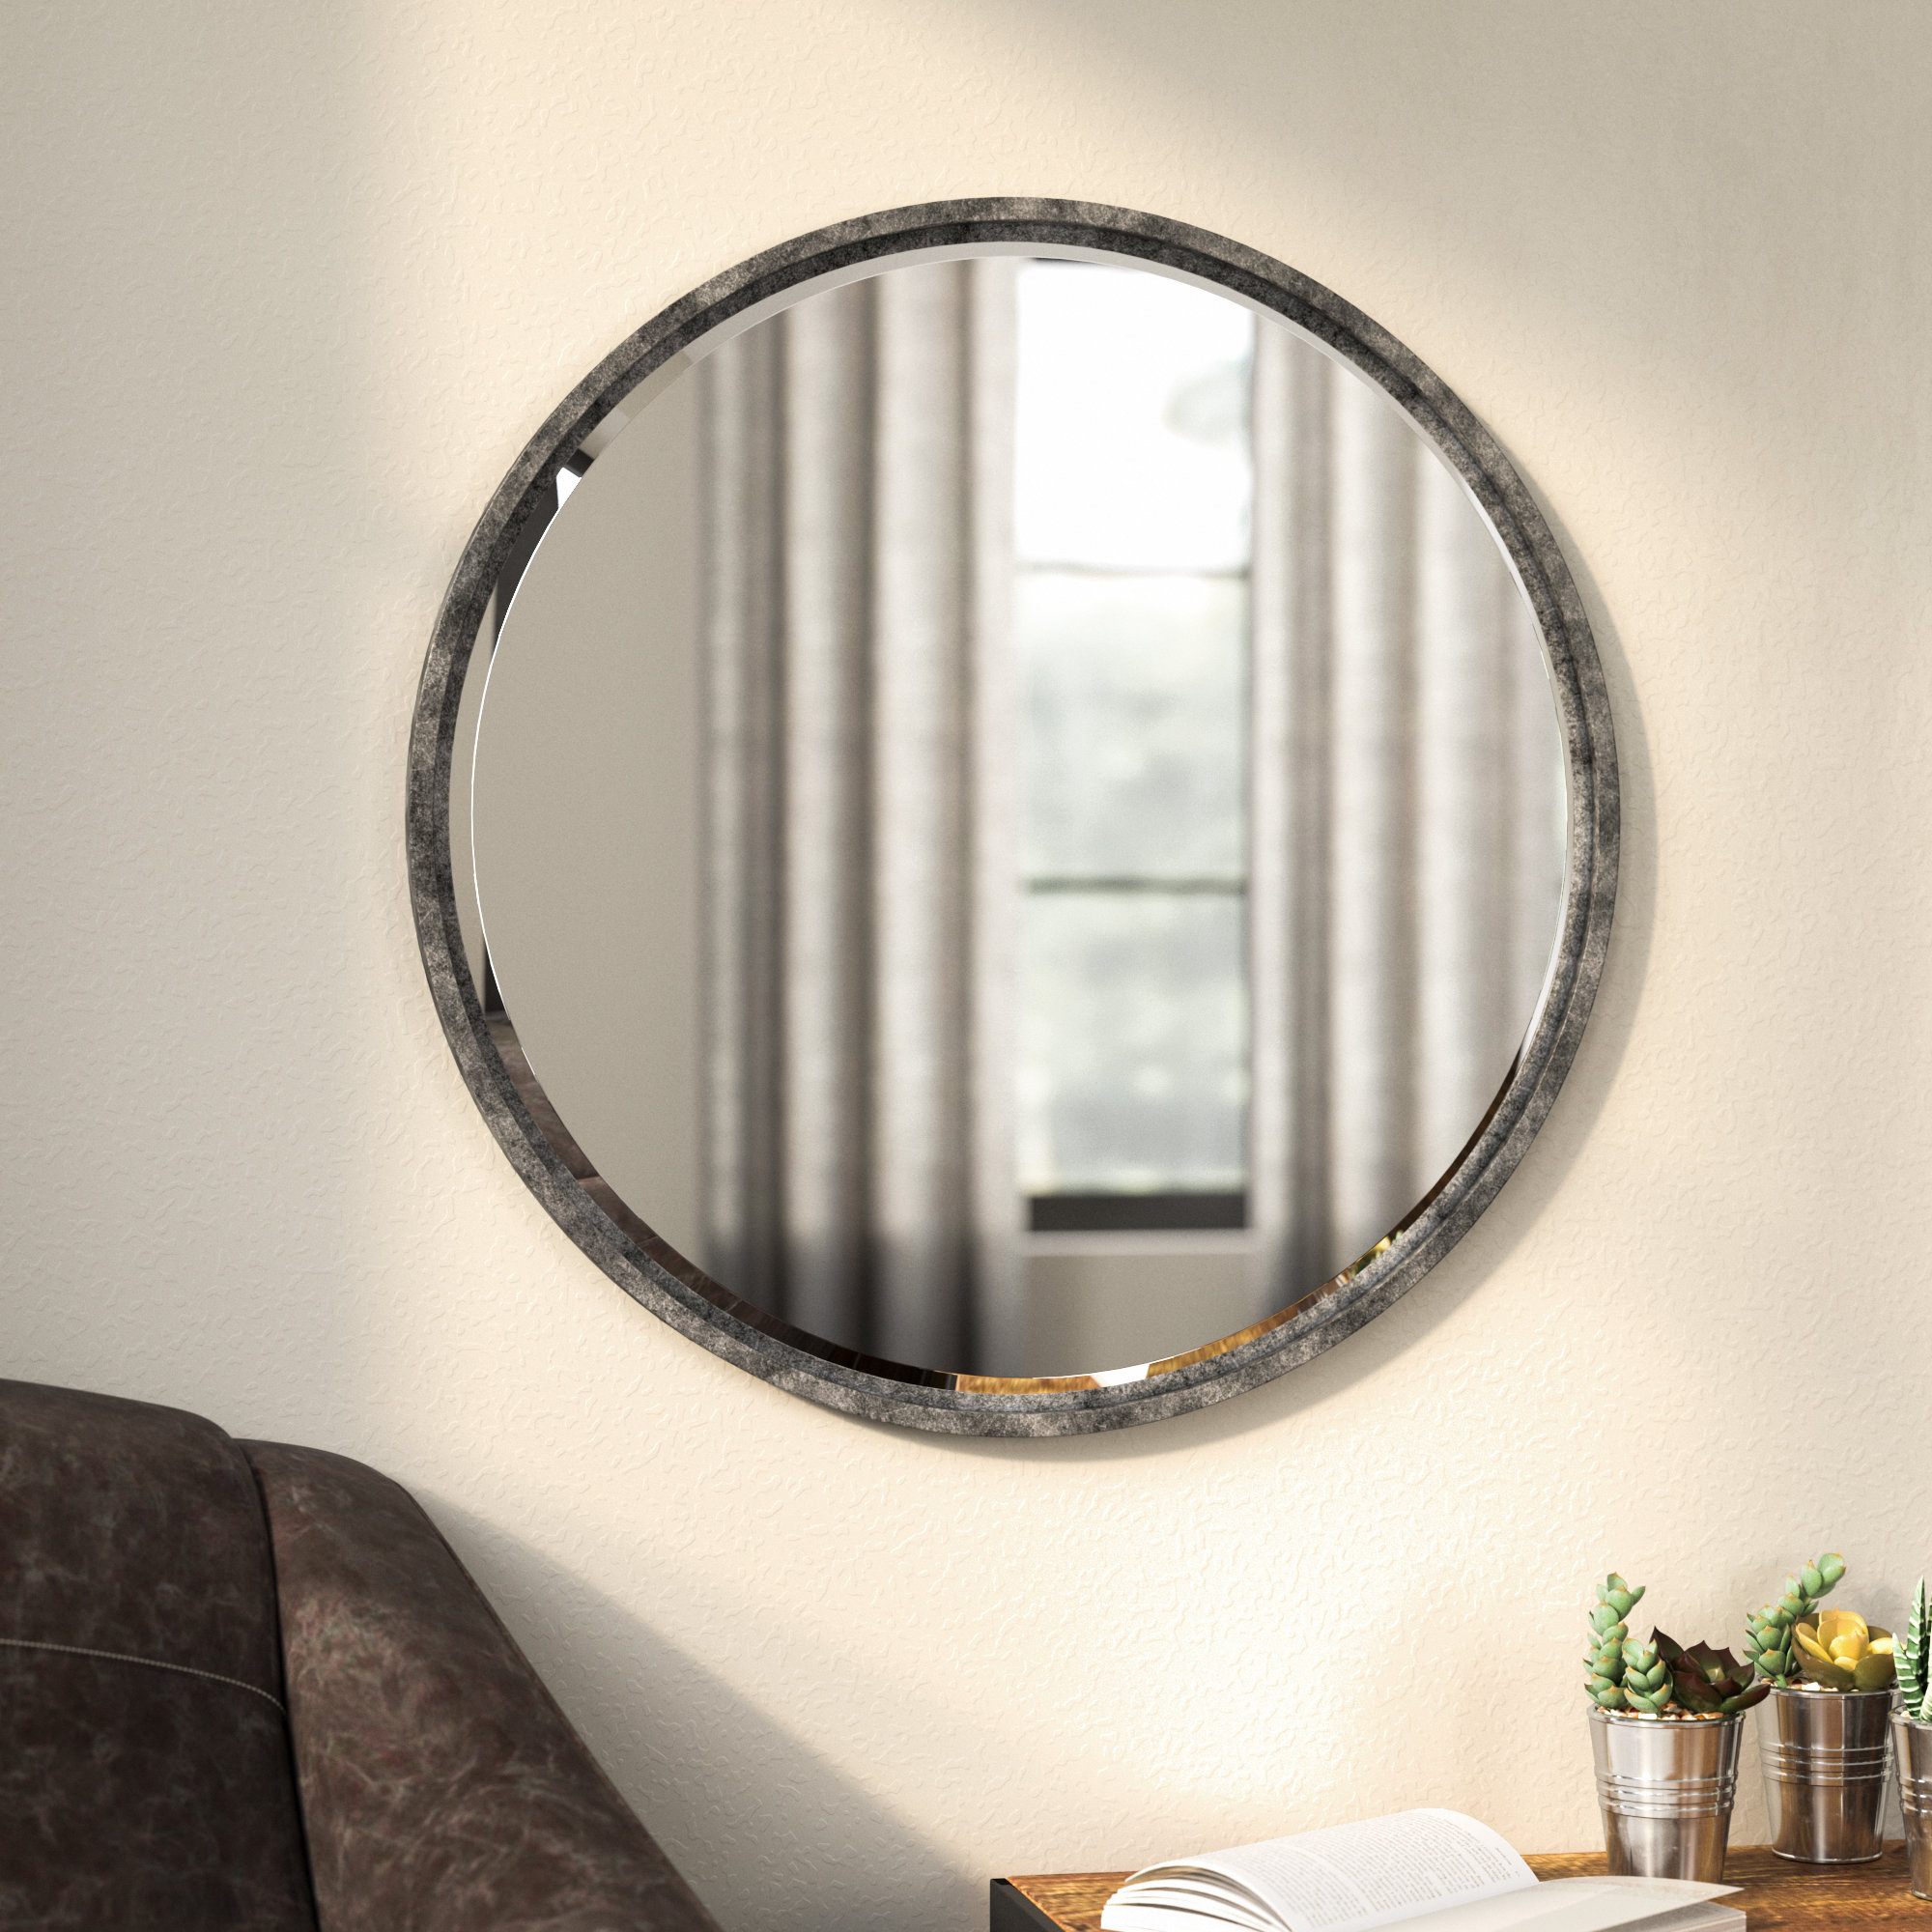 Accent Mirror Within Charters Towers Accent Mirrors (View 12 of 20)